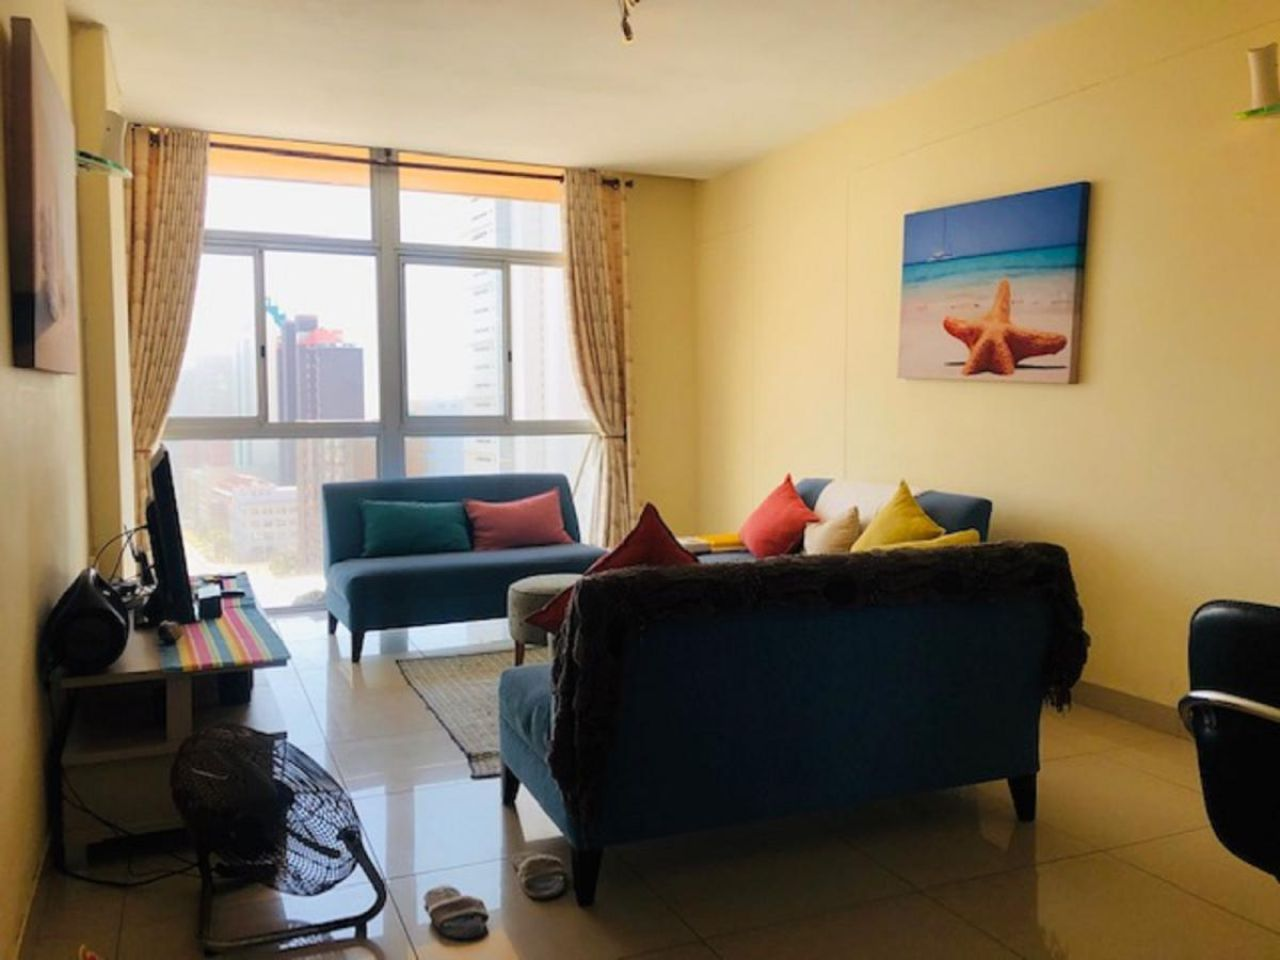 2 Bedroom apartment to rent in North Beach, Durban